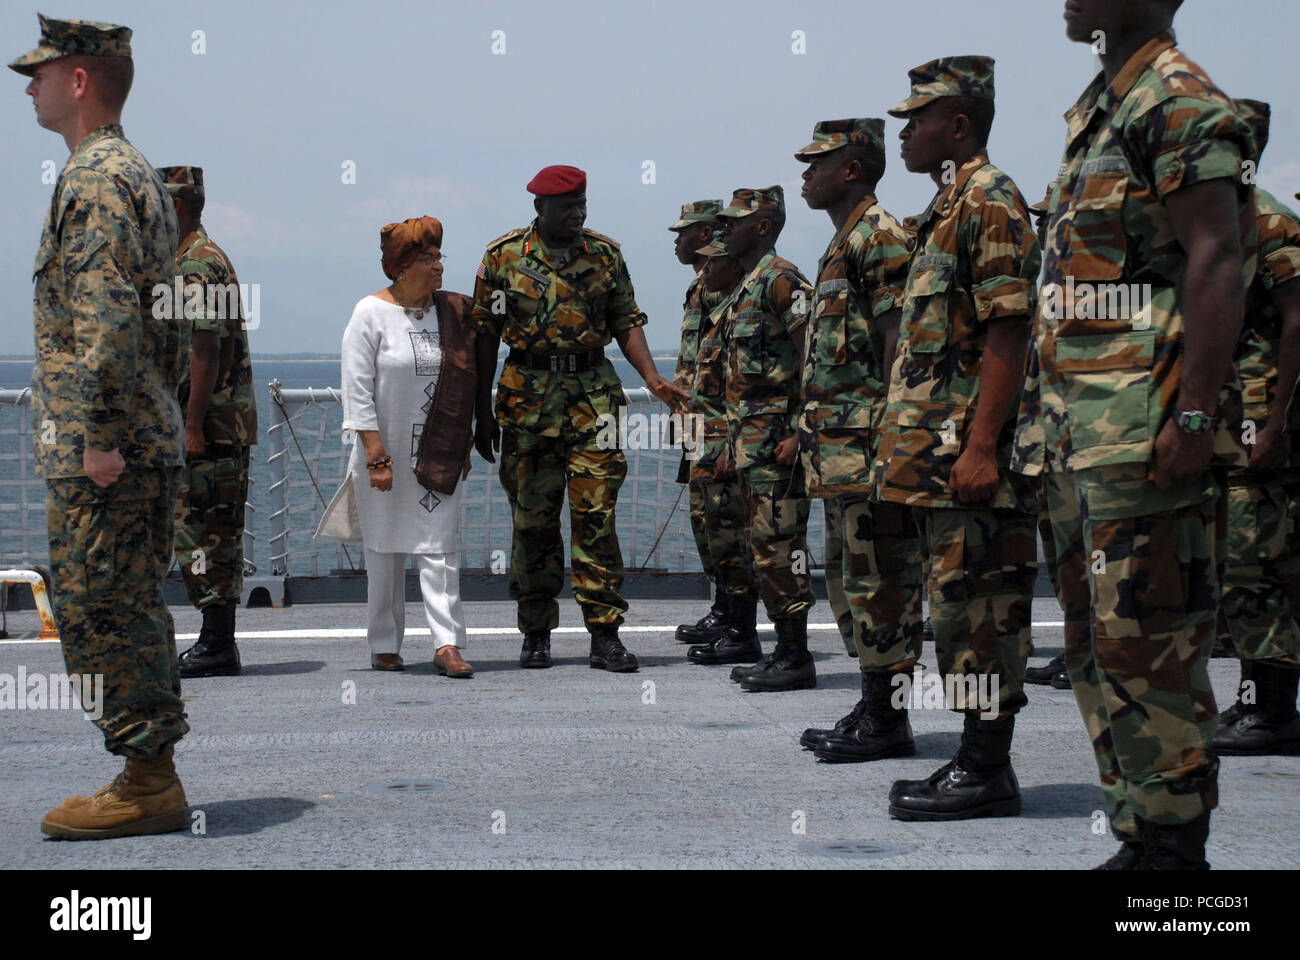 Armed Forces Of Liberia Stock Photos & Armed Forces Of